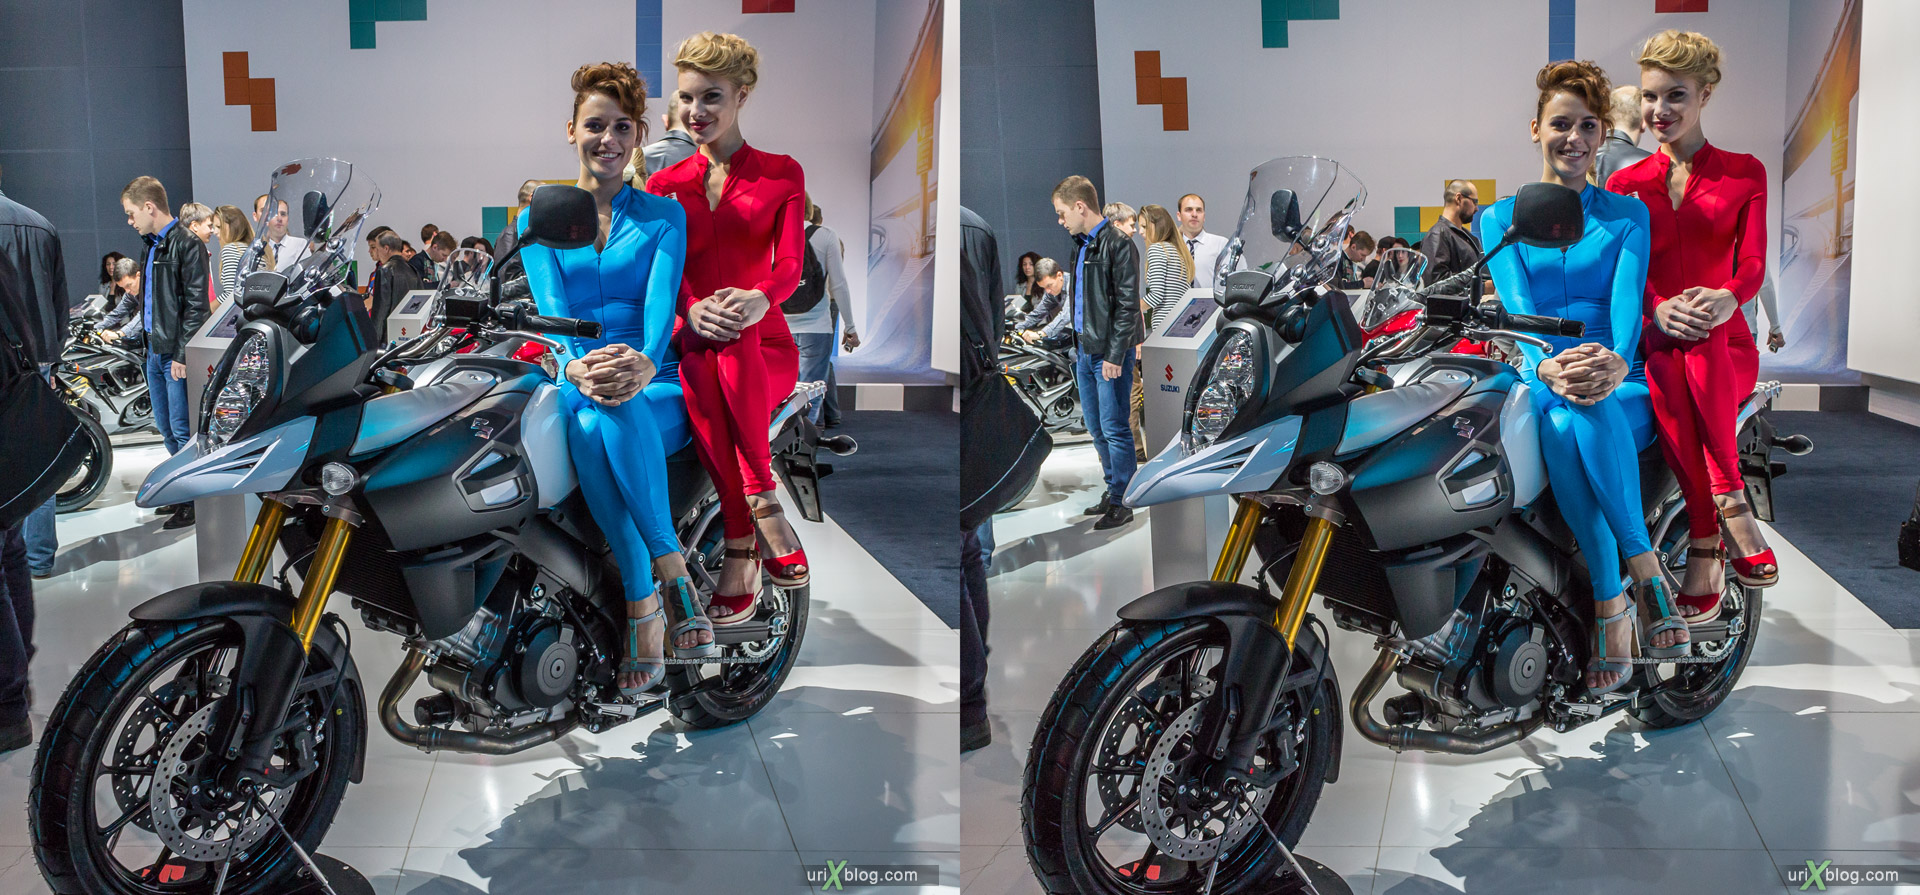 2014, Suzuki, Moscow International Automobile Salon, MIAS, Crocus Expo, Moscow, Russia, augest, 3D, stereo pair, cross-eyed, crossview, cross view stereo pair, stereoscopic